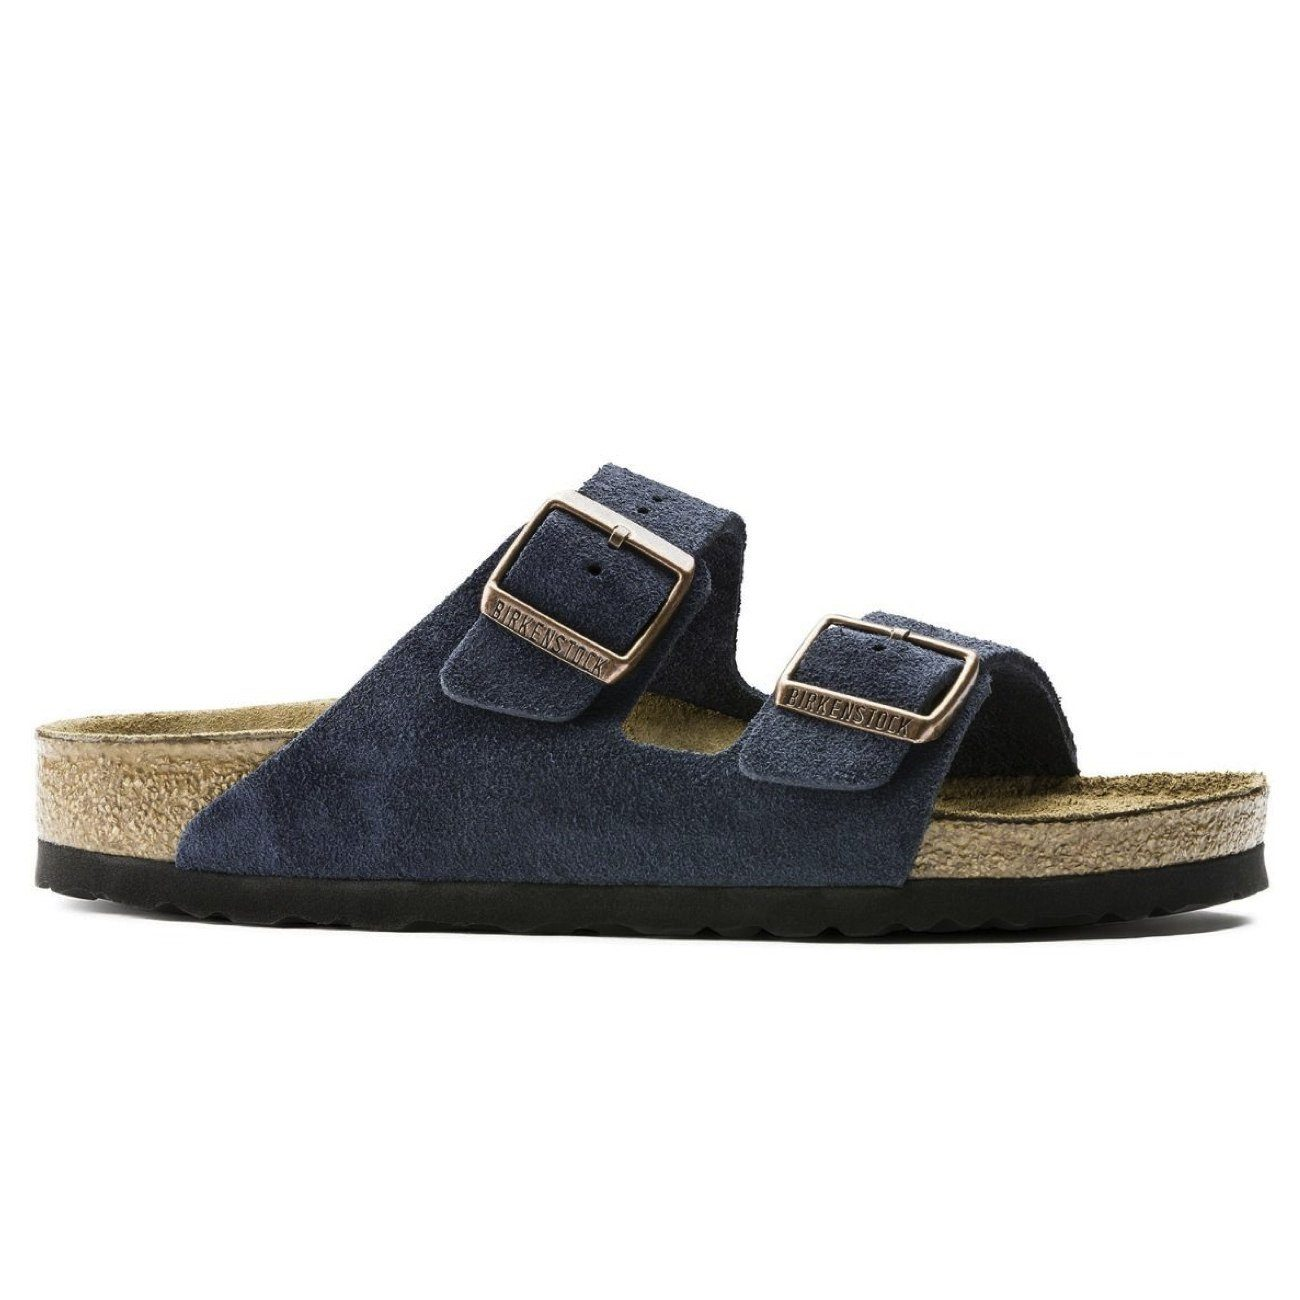 Birkenstock Classic, Arizona, Suede Leather, Soft-Footbed, Regular Fit, Navy Sandals Birkenstock Classic Navy 36